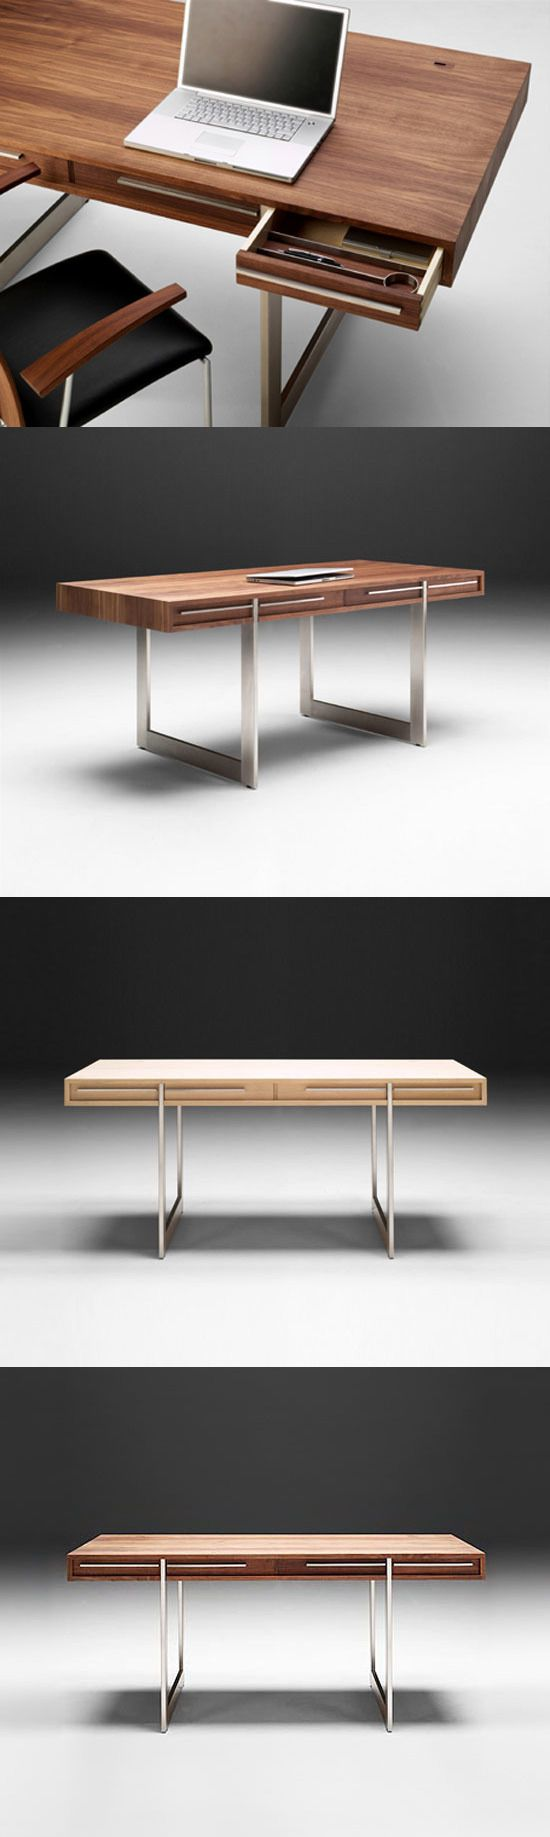 Søren Nissen and Ebbe Gehl AK 1340 Desk